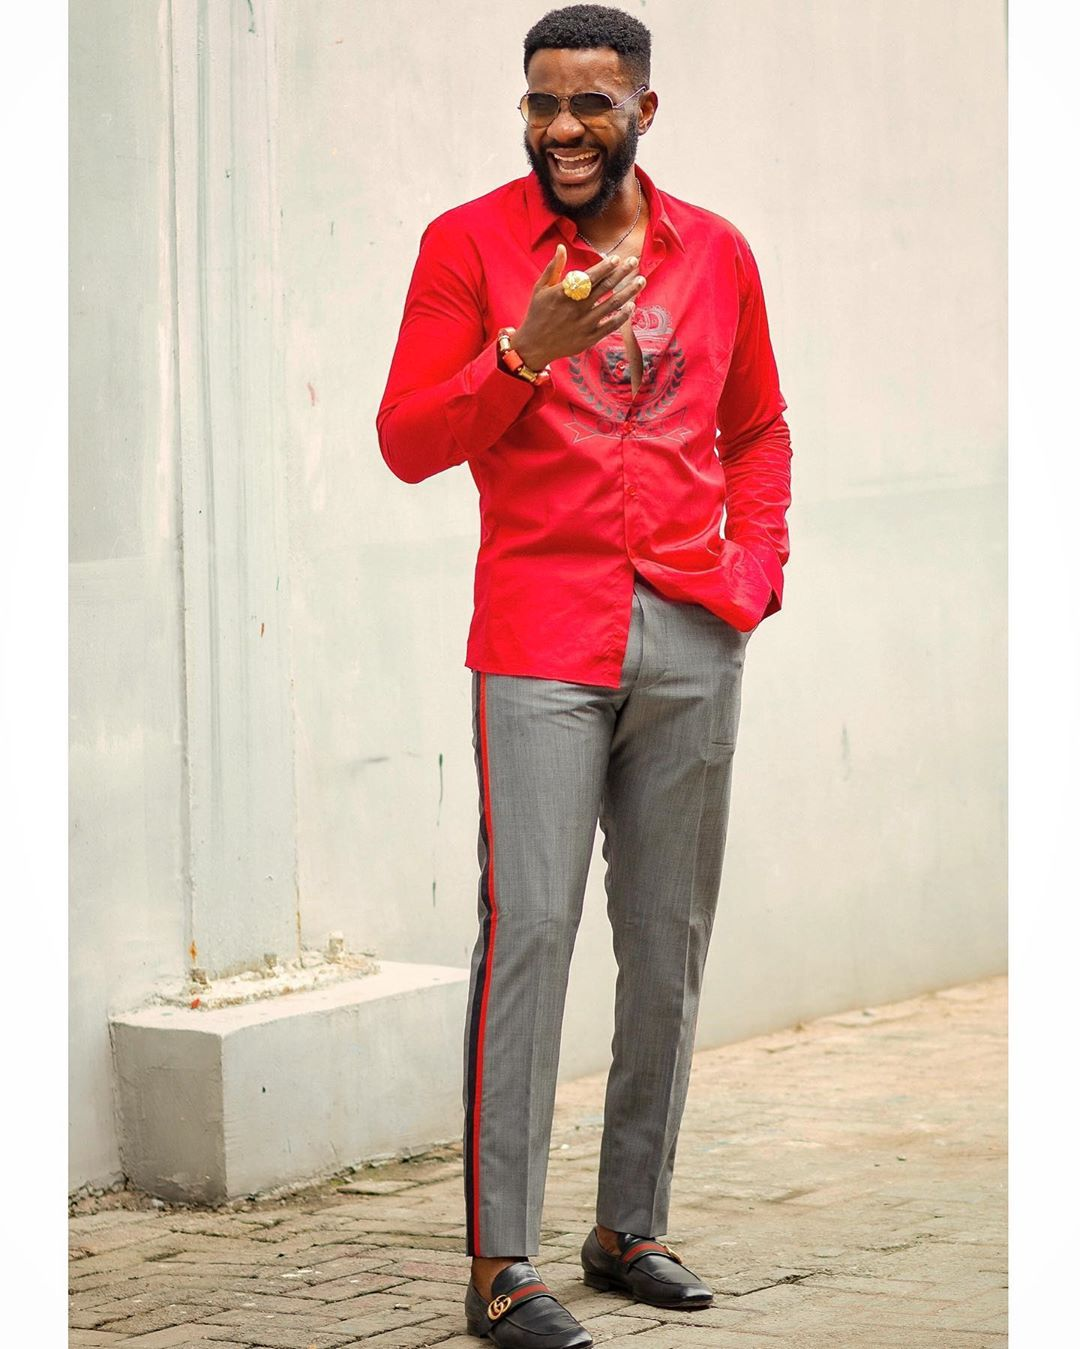 africa-african-male-celebrities-fashion-best-dressed-style-rave